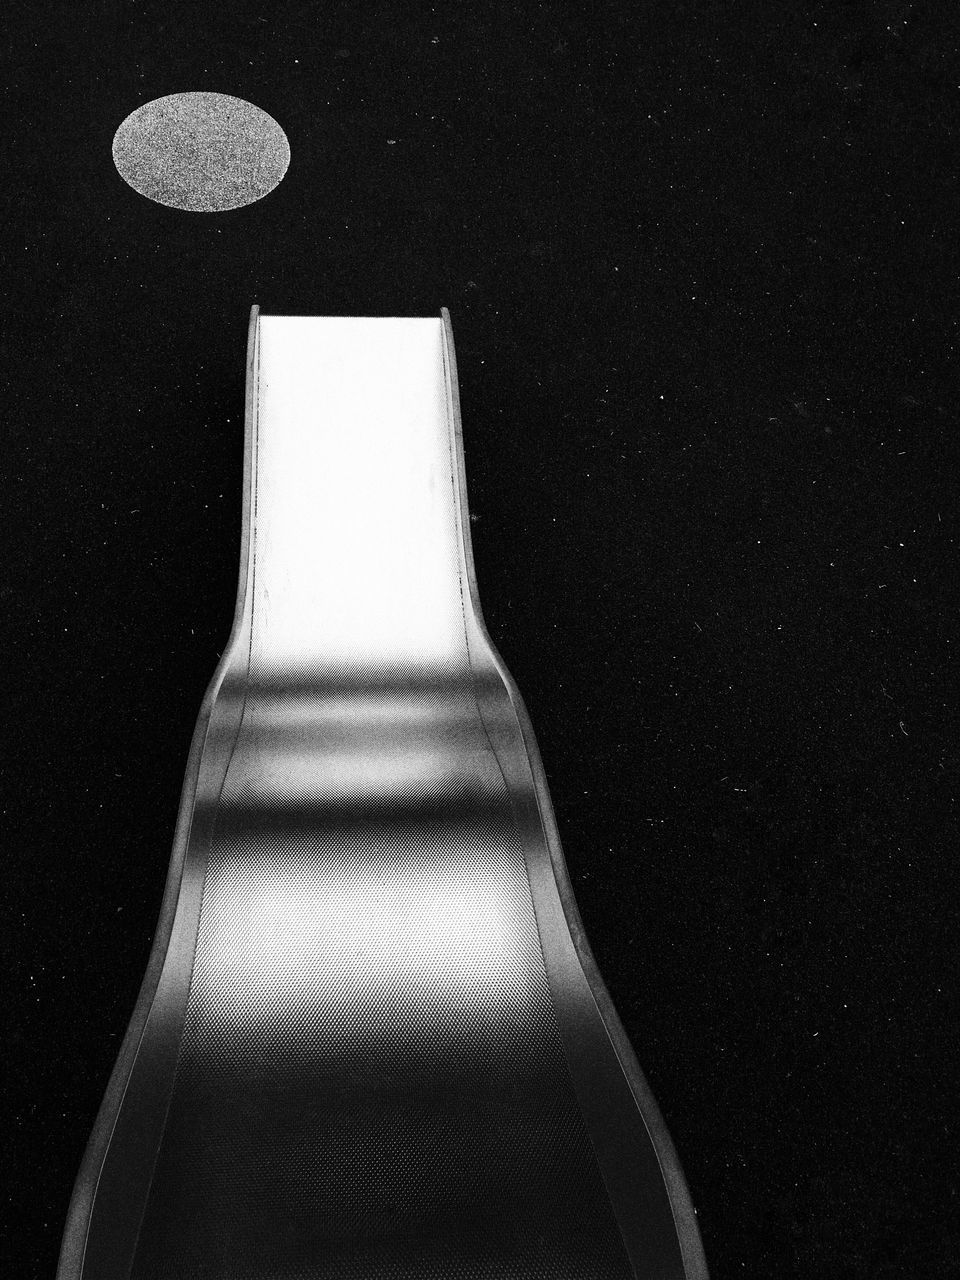 the way forward, no people, night, space, outdoors, astronomy, close-up